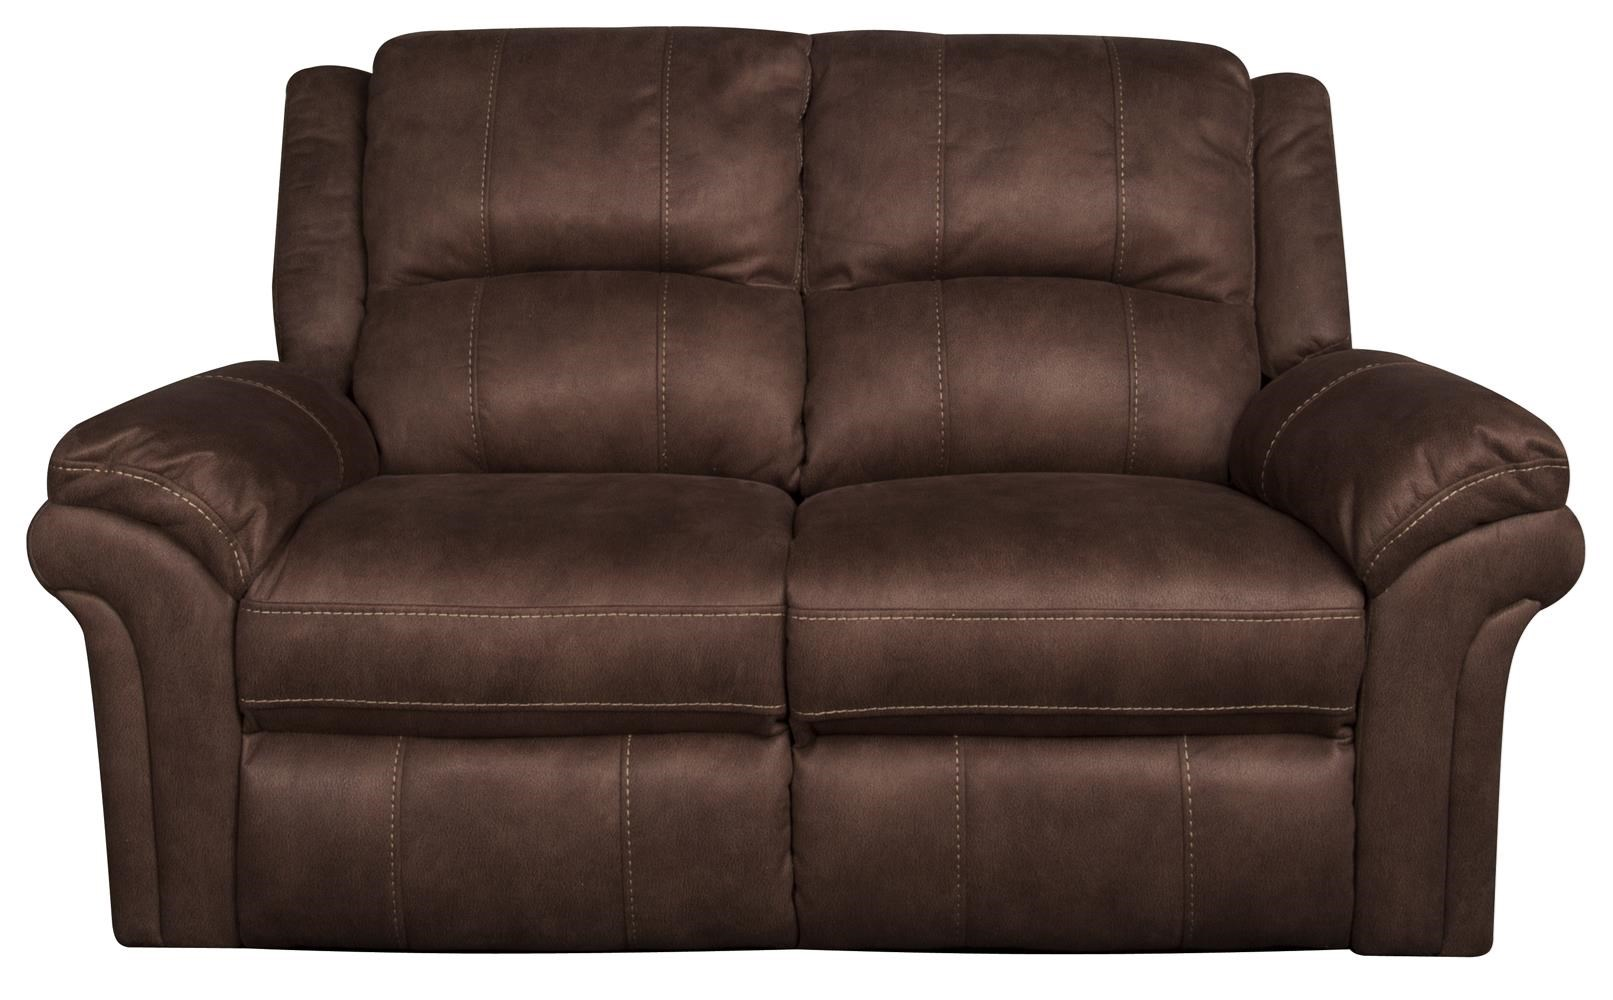 Morris Home Furnishings Gary Gary Reclining Loveseat - Item Number: 105837574